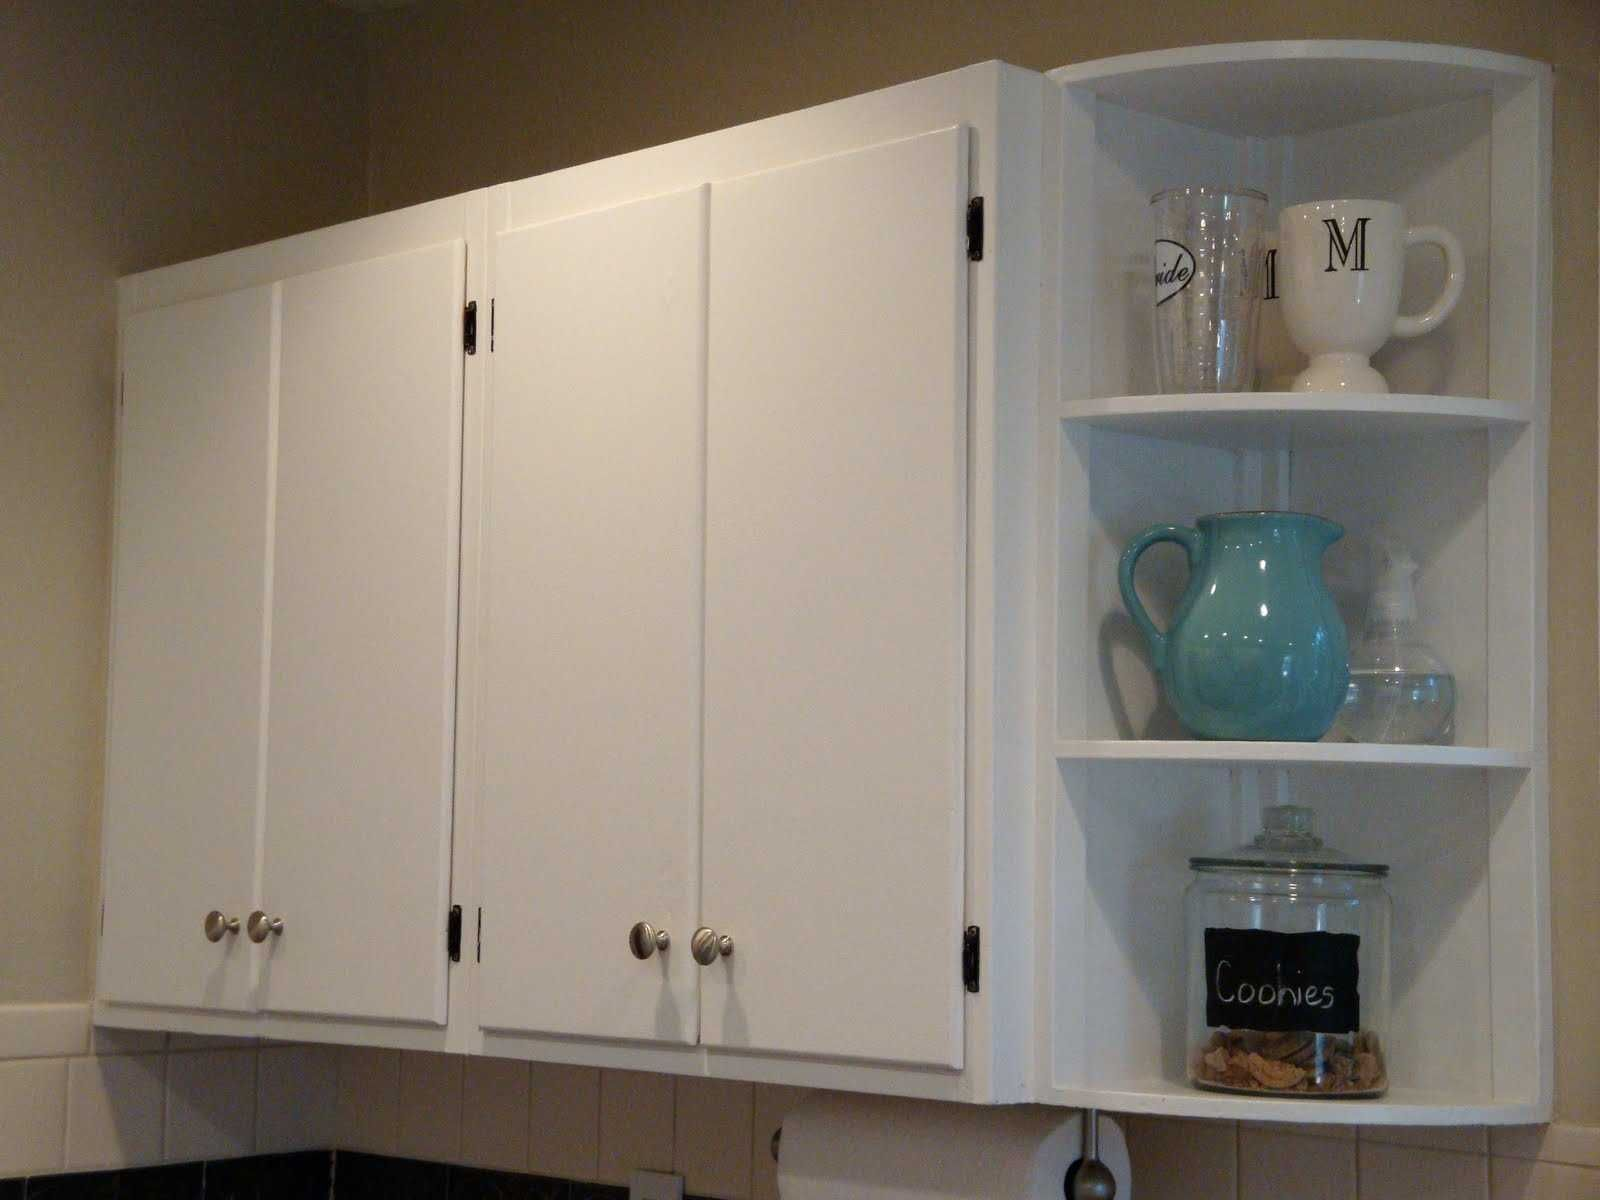 Diy refinish kitchen cabinets u having lavish cupboards clinging